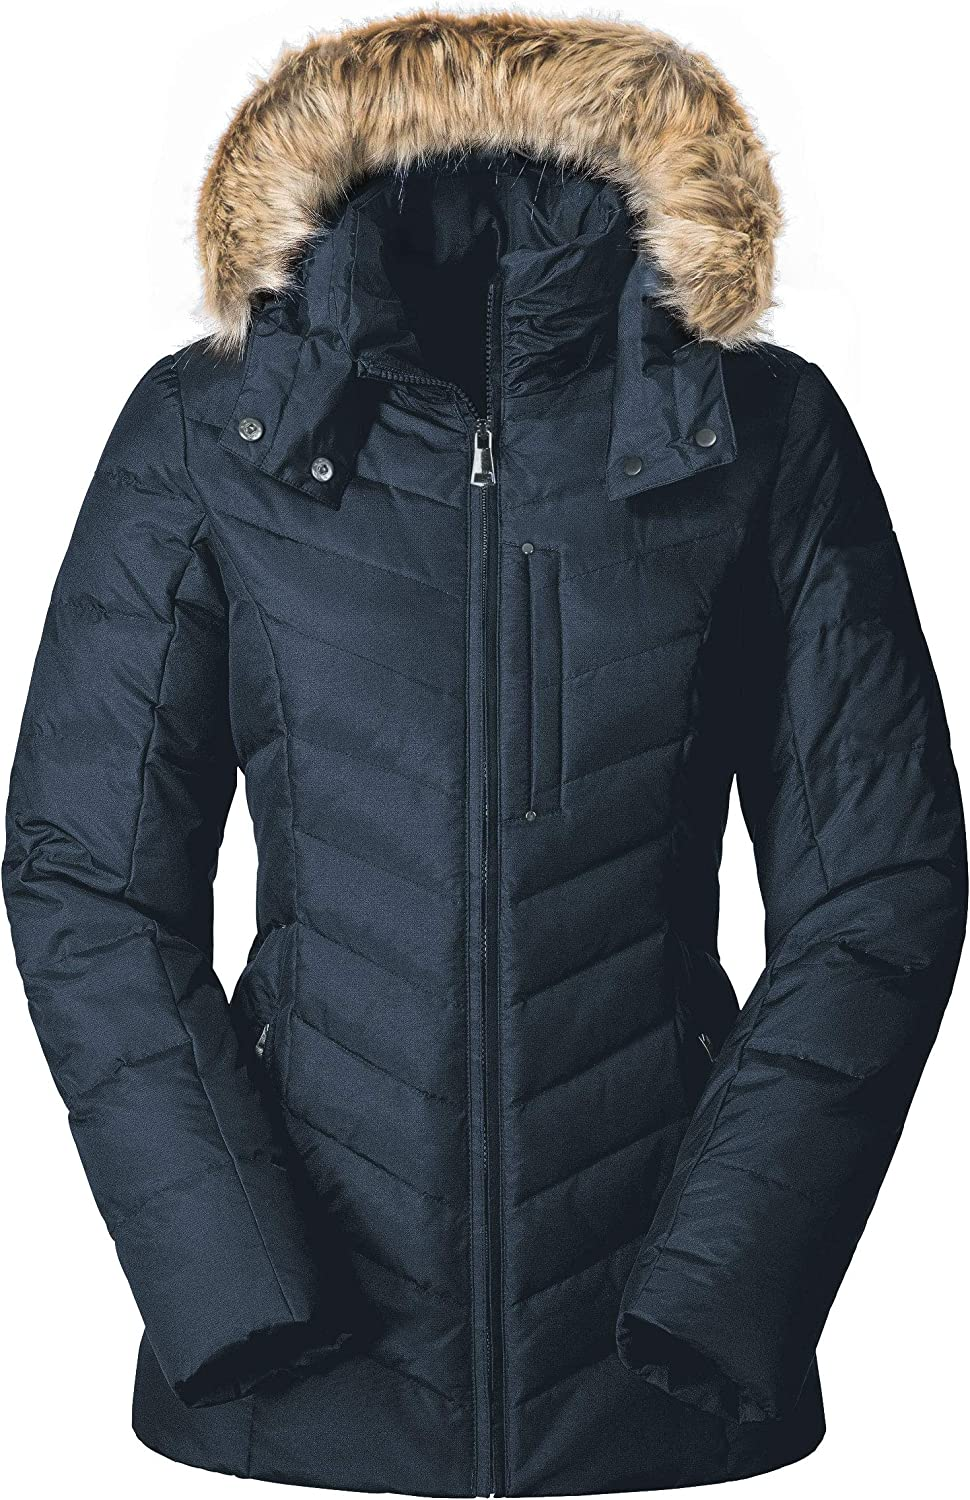 famous Max 73% OFF NUTEXROL Womens Thickened Winter Coat Hooded Jacke Parka Outwear